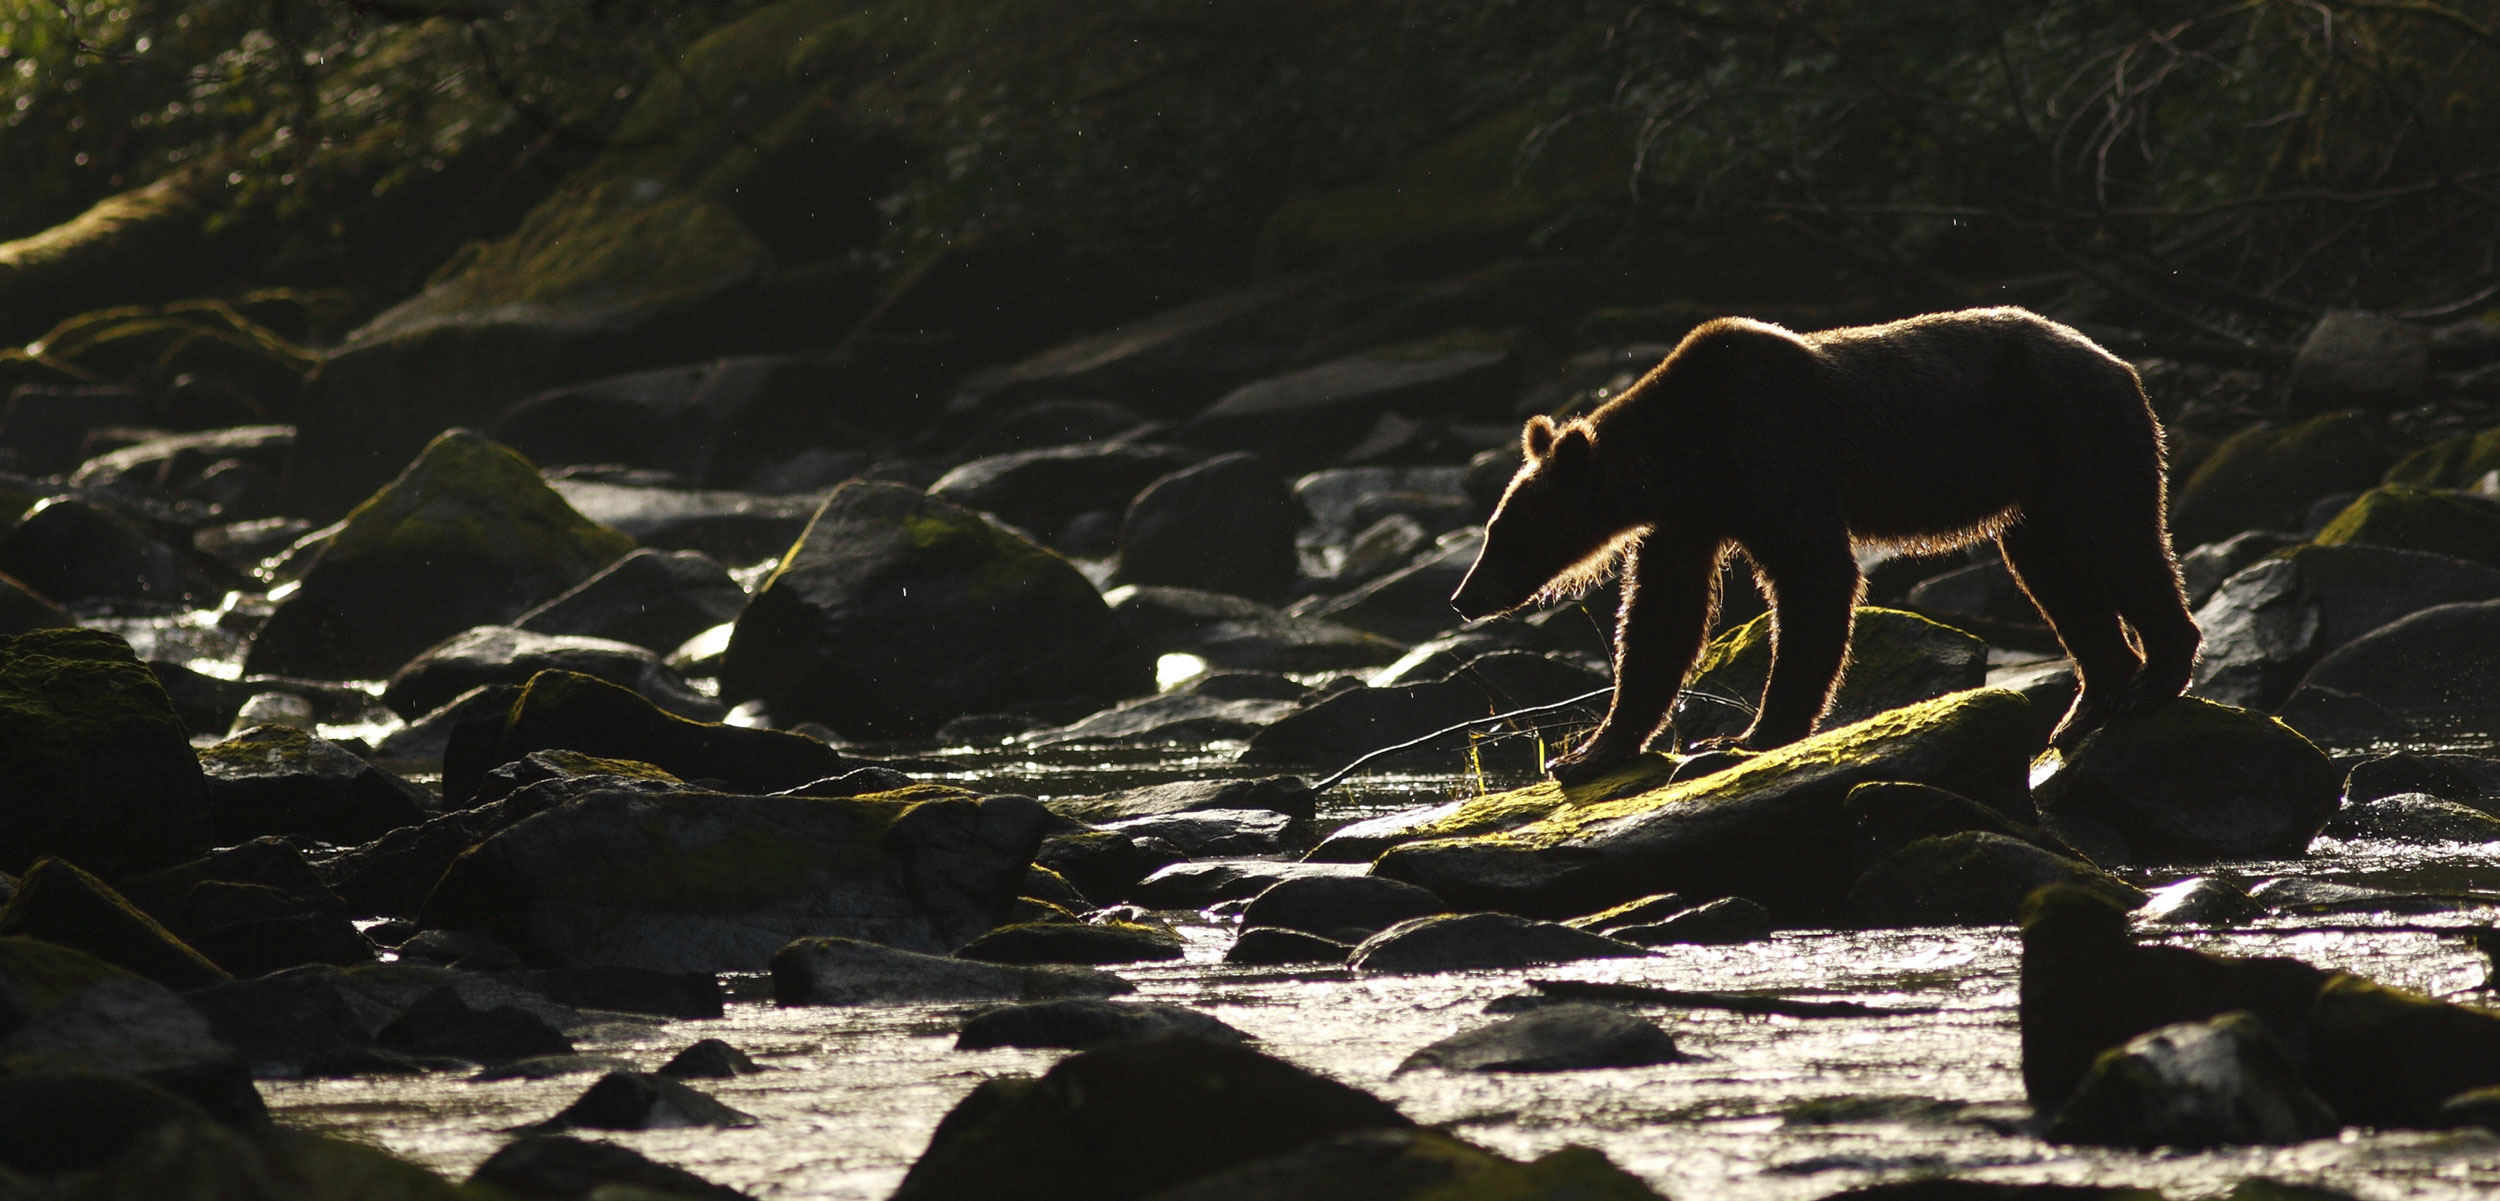 Grizzly Bear (Ursus arctos horribilis) adult, fishing for salmon in the Great Bear Rainforest